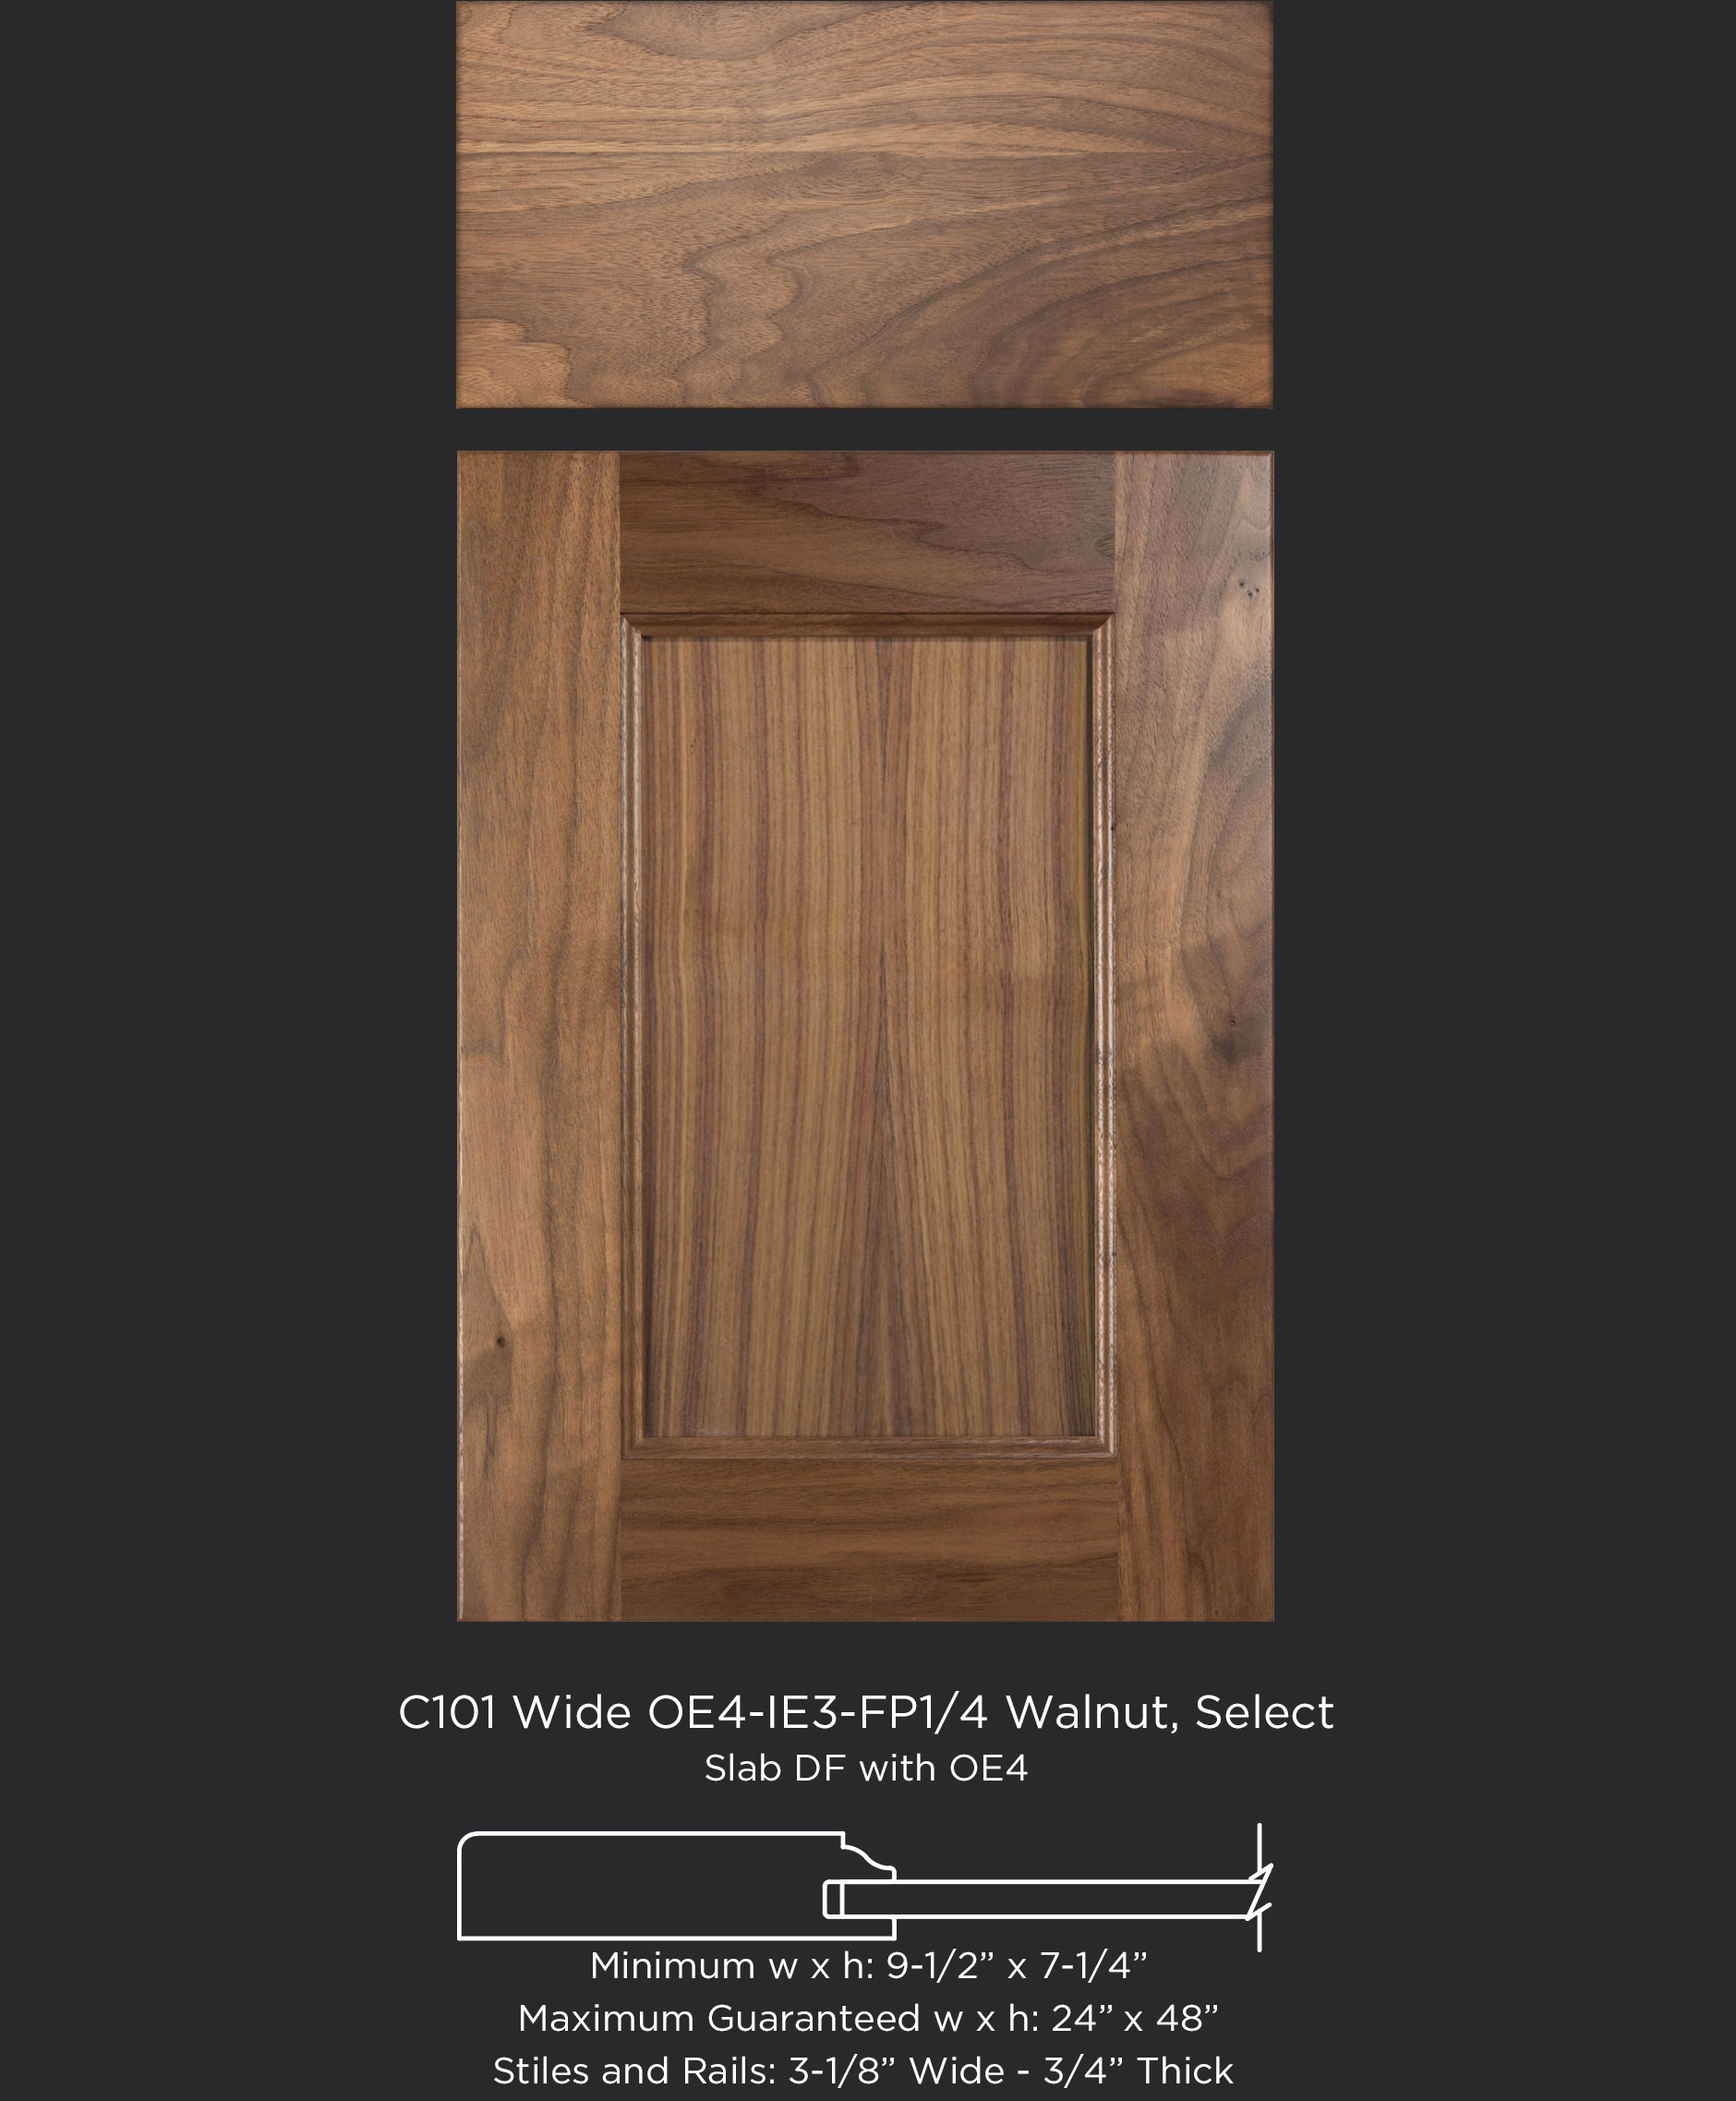 Cope and Stick Cabinet Door C101 Wide OE4-IE3-FP1/4 Walnut, Select with slab drawer front